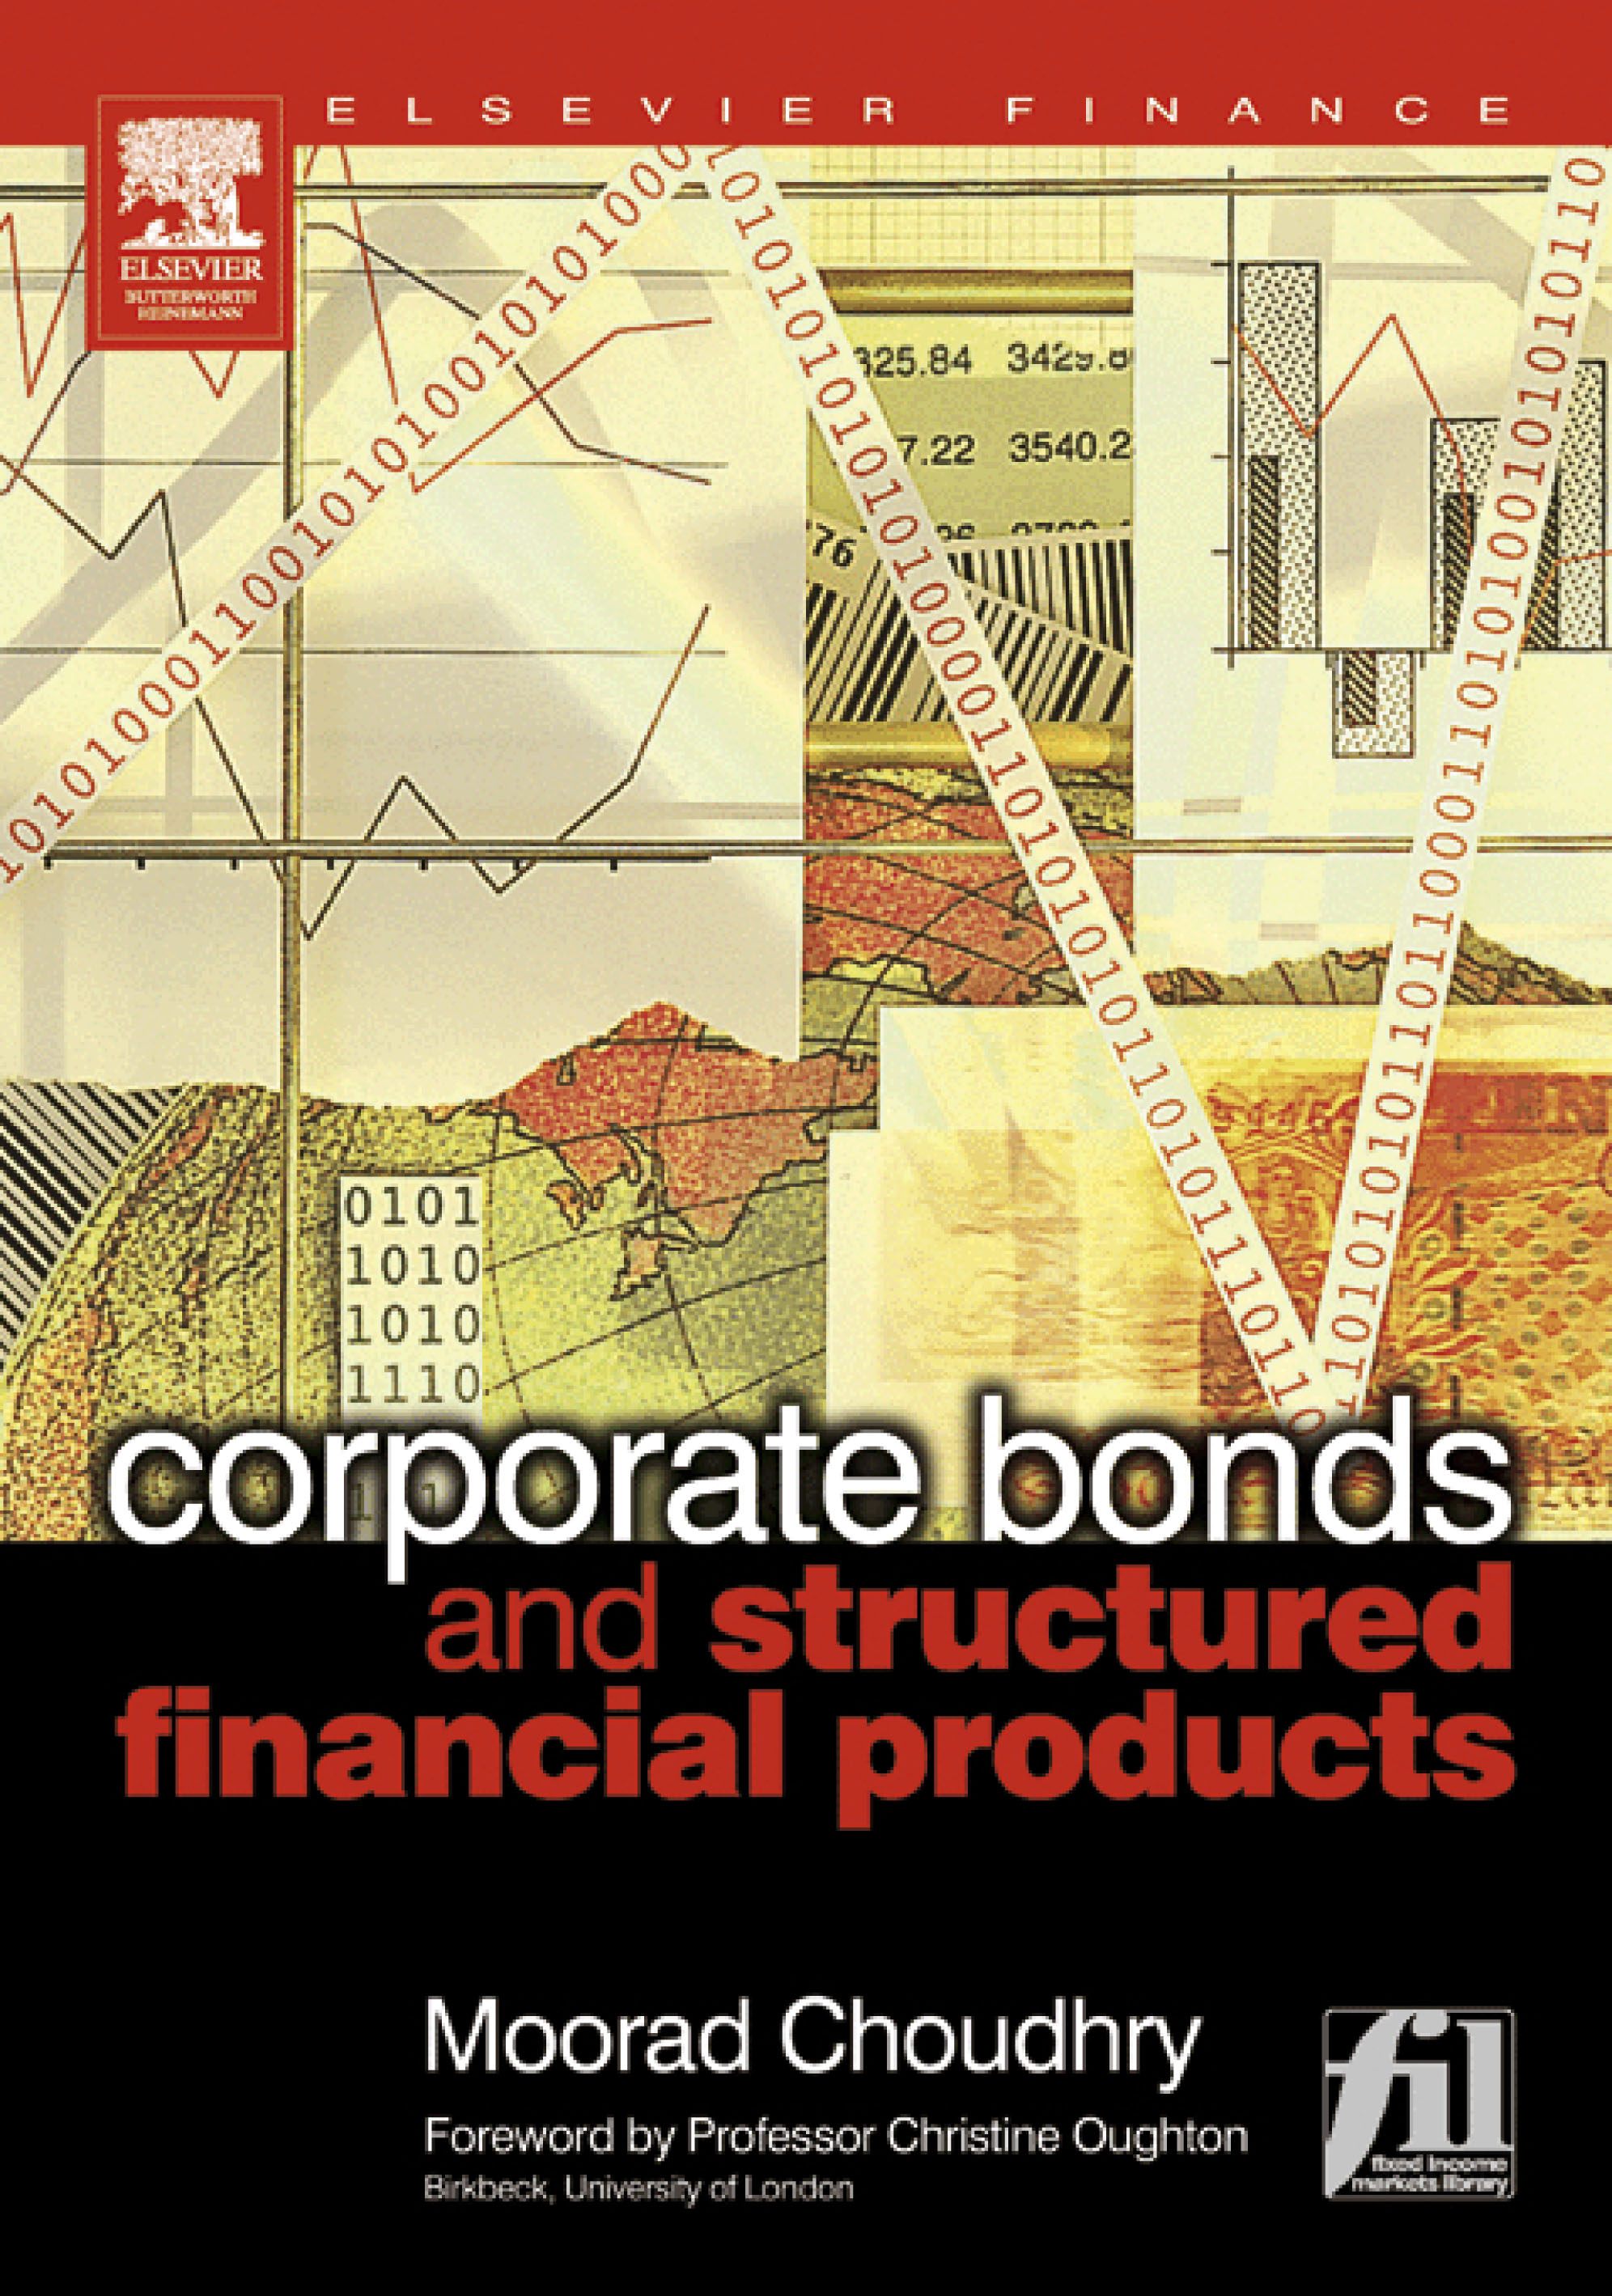 Download Ebook Corporate Bonds and Structured Financial Products by Moorad Choudhry Pdf